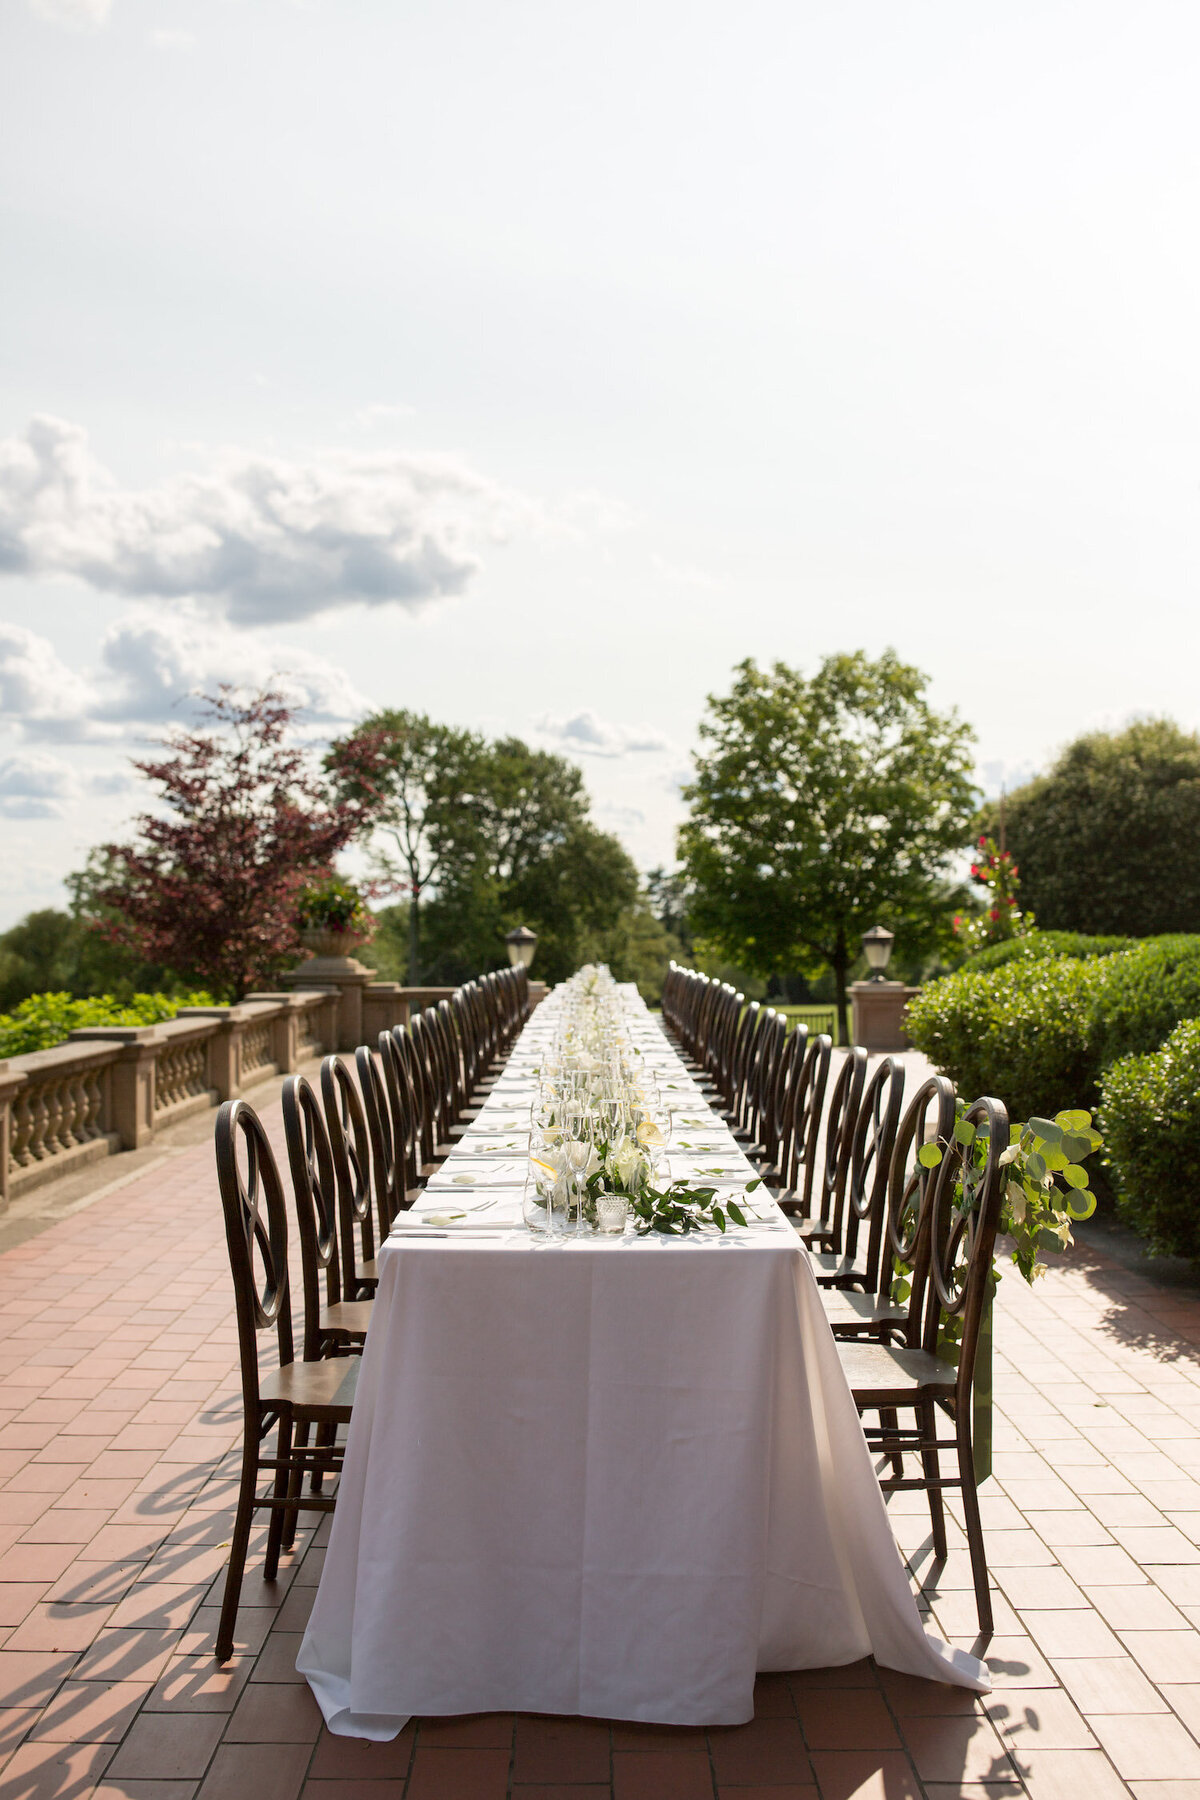 waveny-house-wedding-catering-forks-and-fingers-catering-3